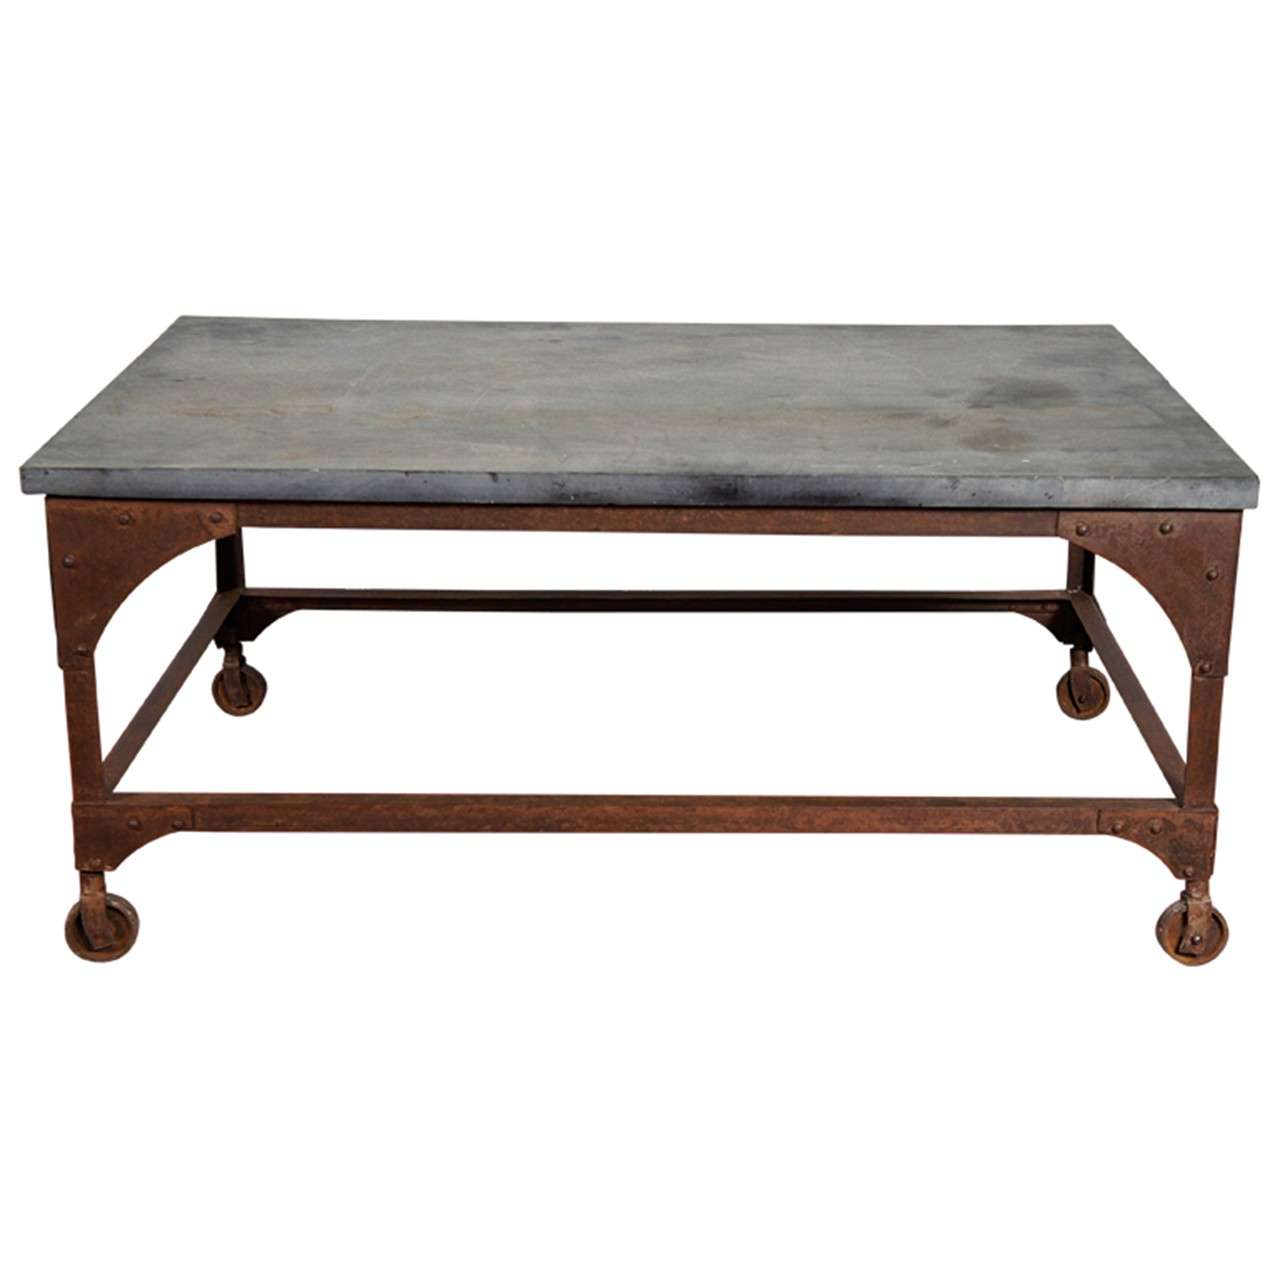 Industrial belgian blue stone and iron coffee table at 1stdibs for Home furniture coffee tables